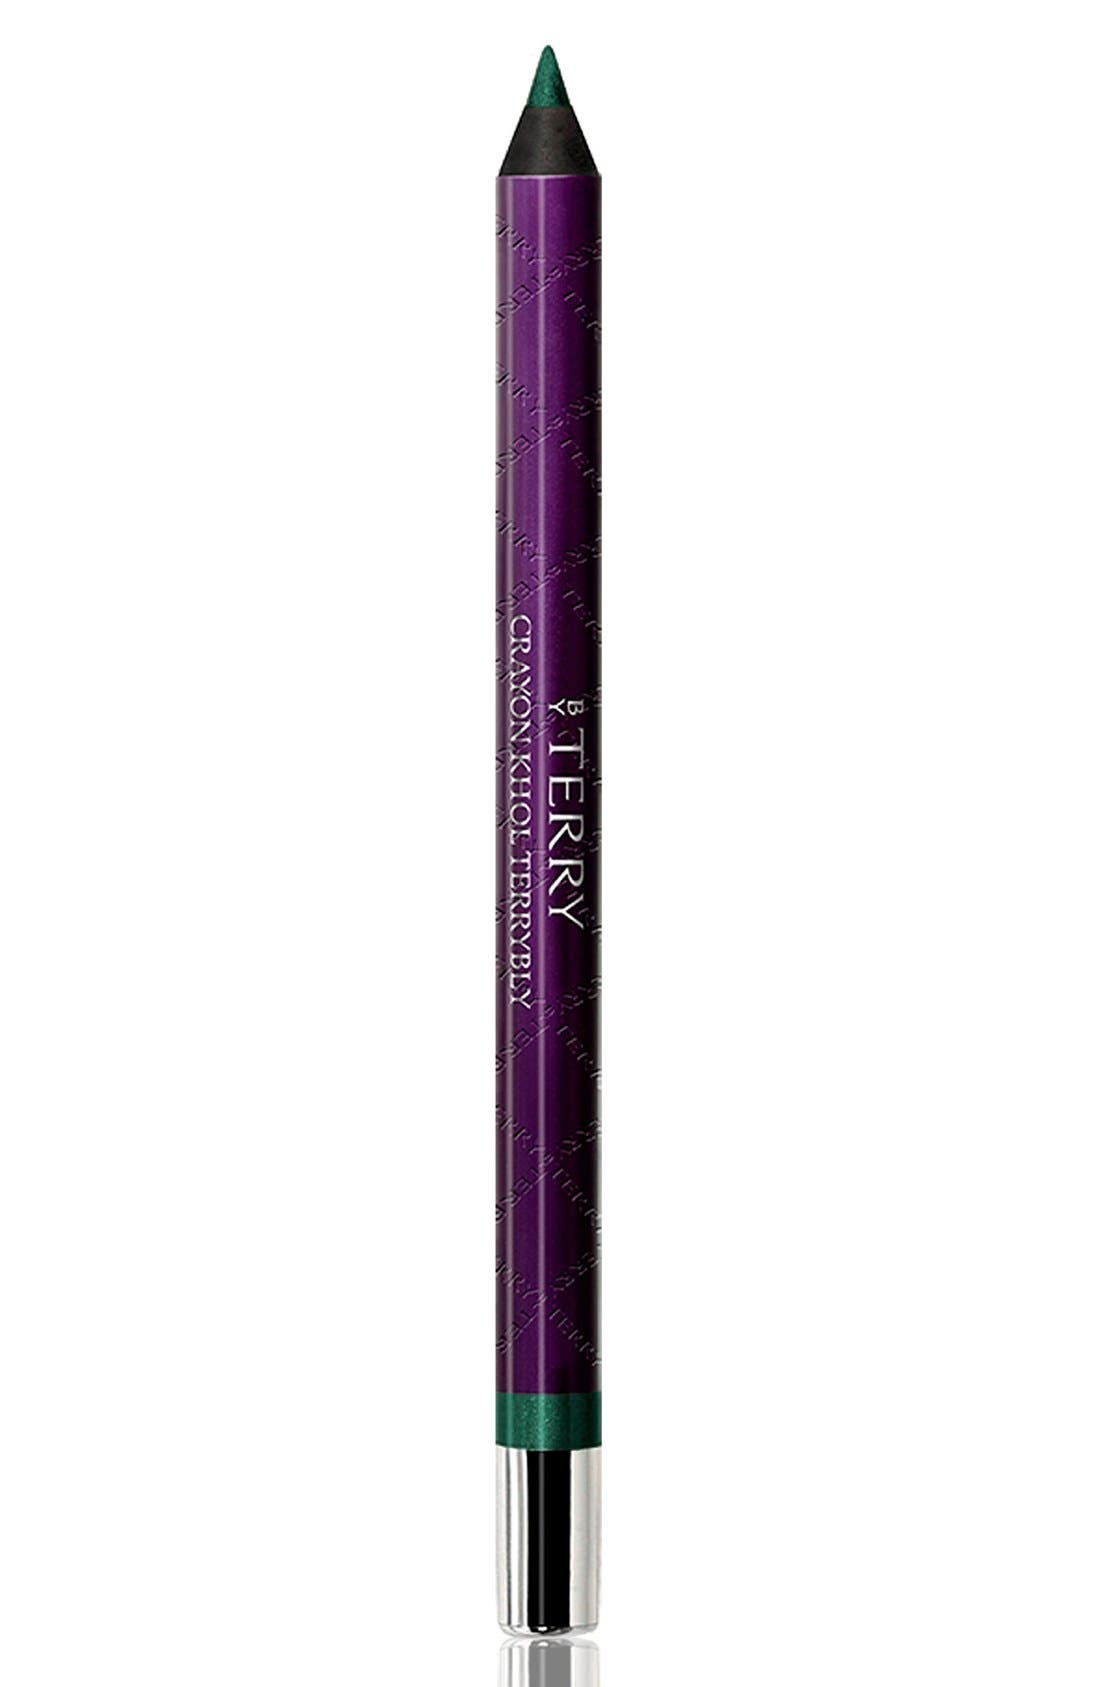 SPACE.NK.apothecary By Terry Crayon Kohl Terribly